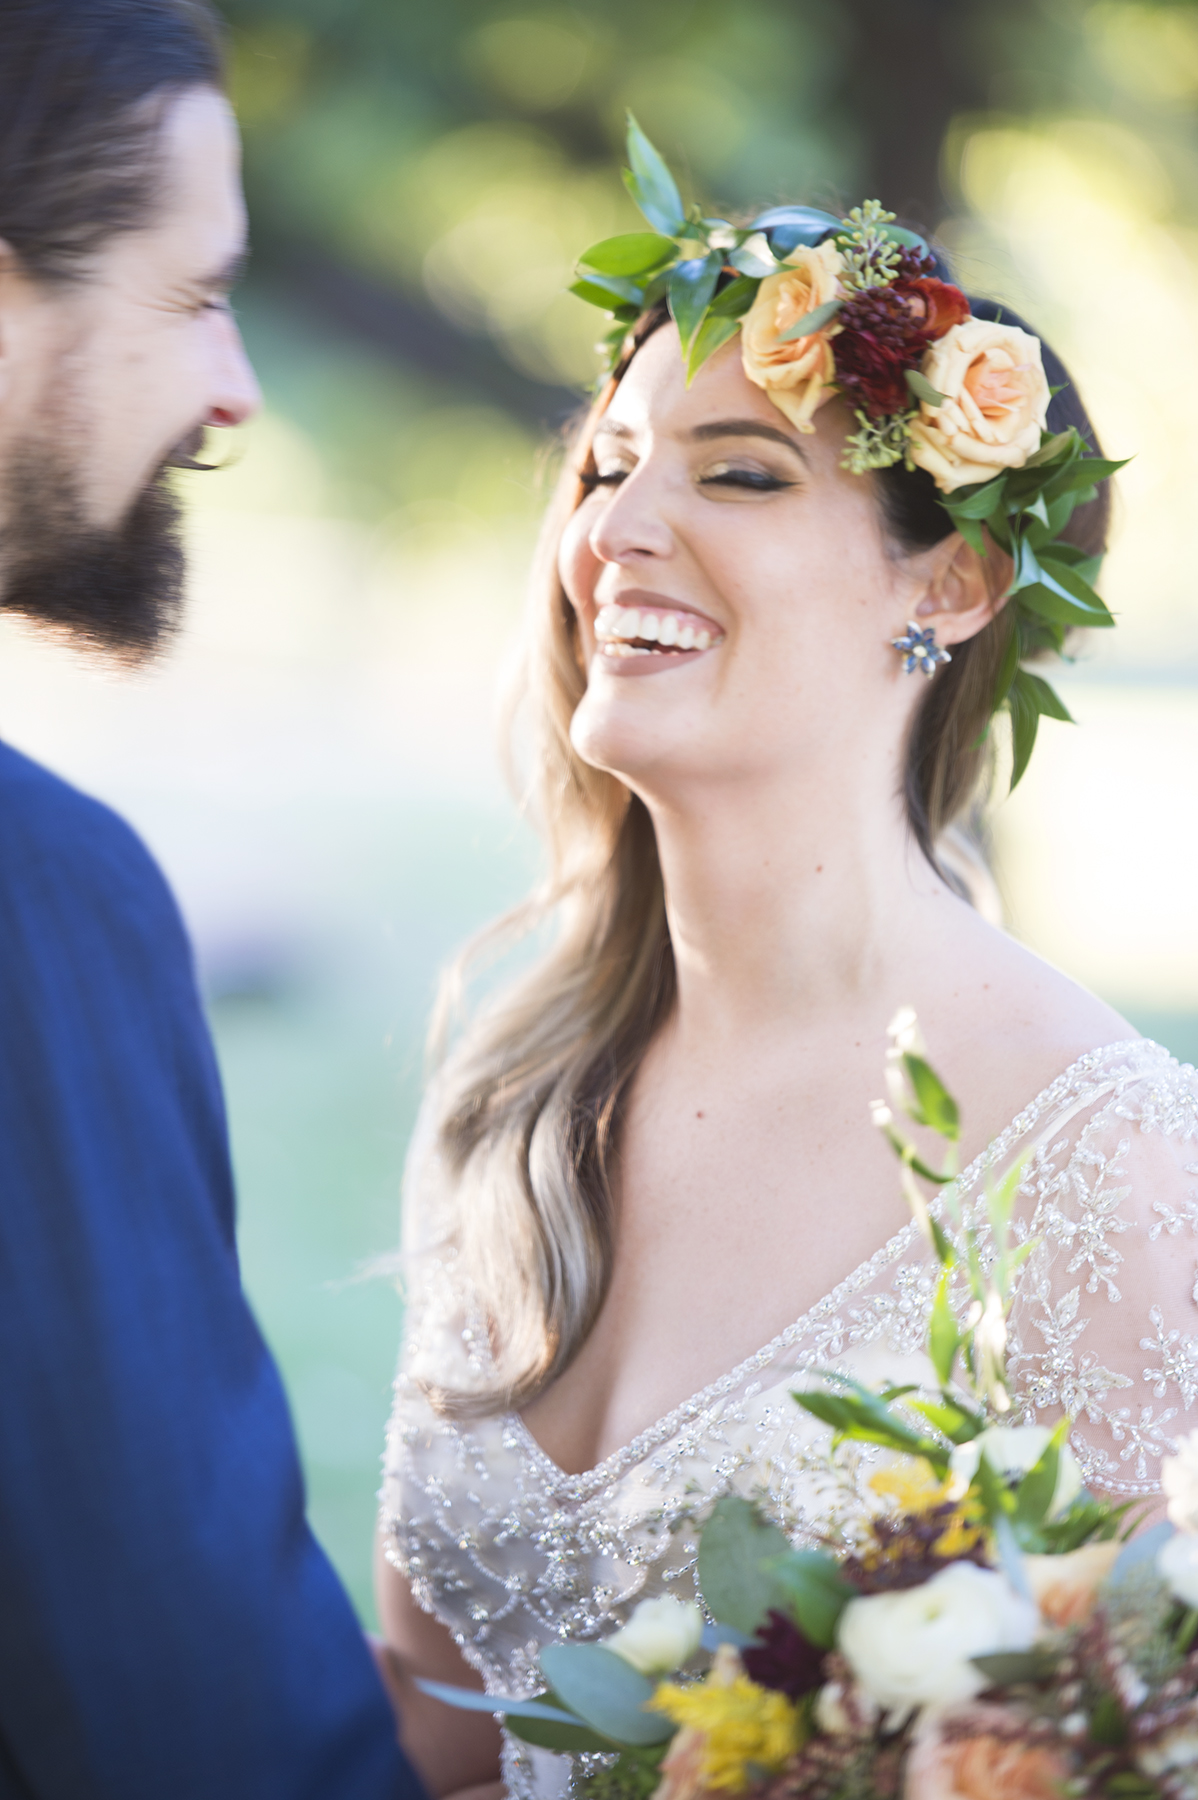 Oklahoma Wedding Photography | Will Roger's Park | Floral Crown | Bohemian Bride